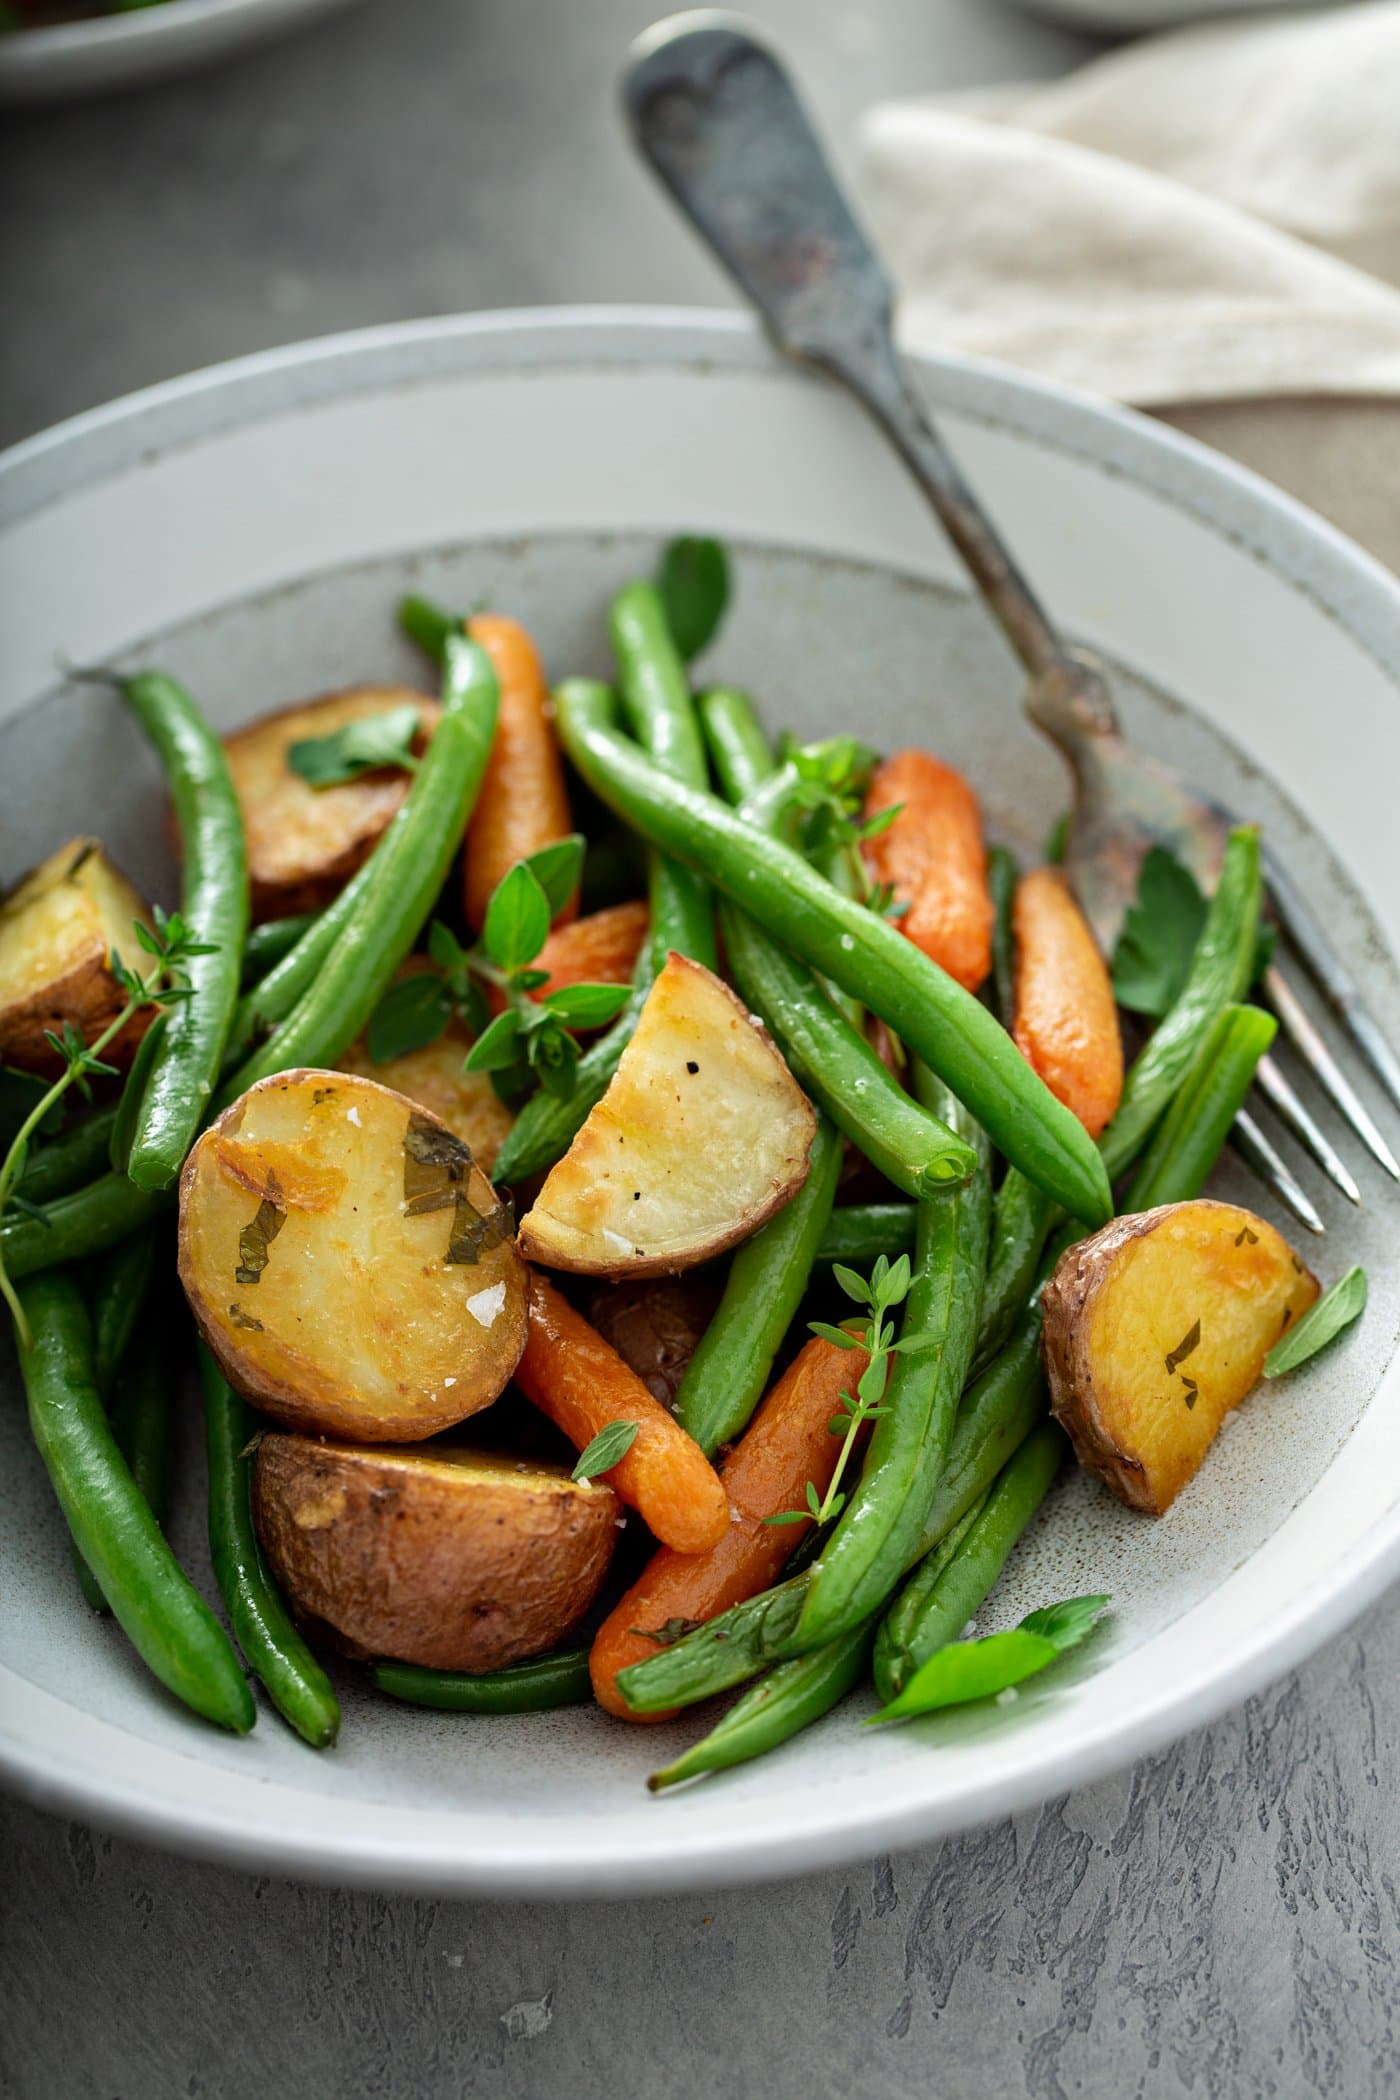 A plate filled with roasted red potatoes, baby carrots, and fresh green beans. A fork is resting next to the roasted vegetables.